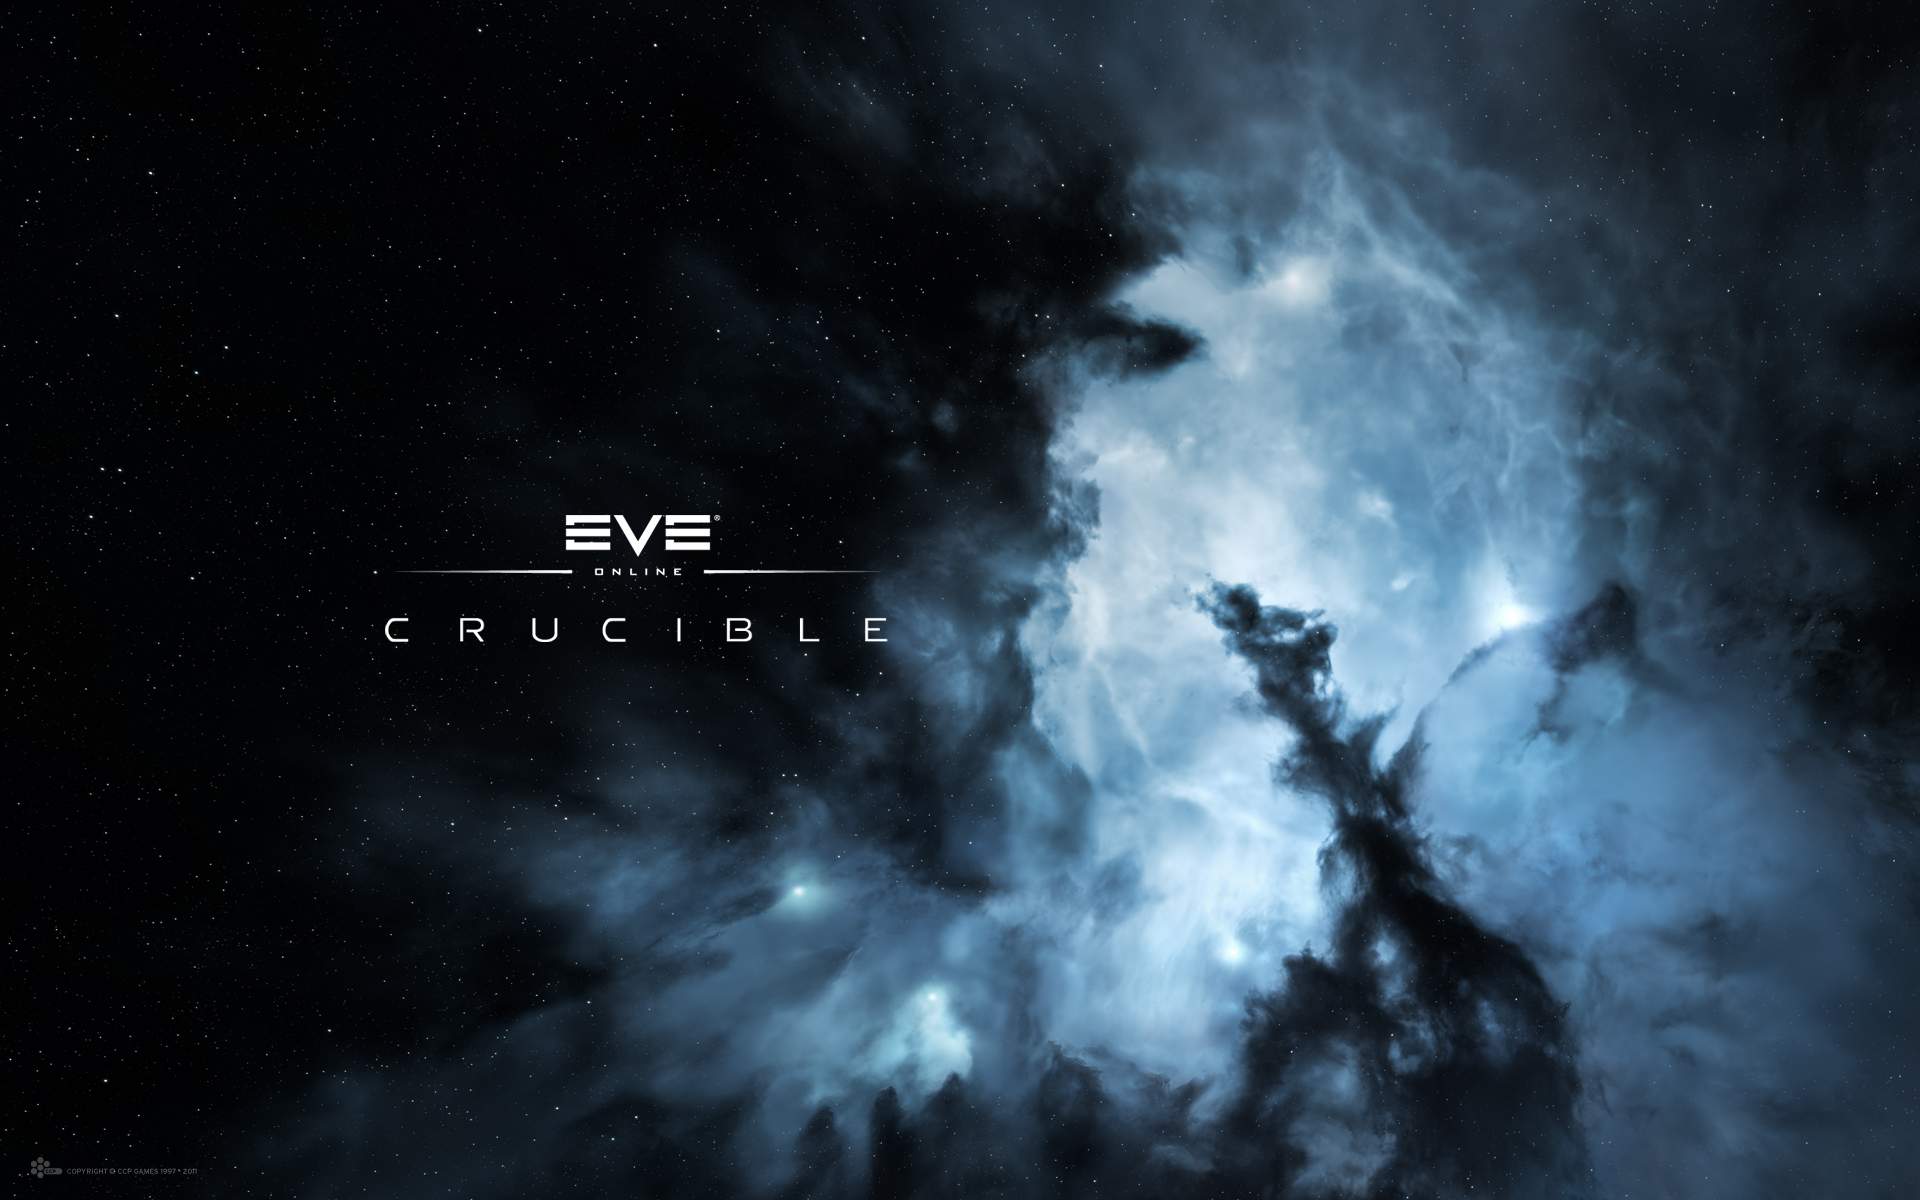 viewmessage wallpaper crucible wallpapers eve online community 1920x1200